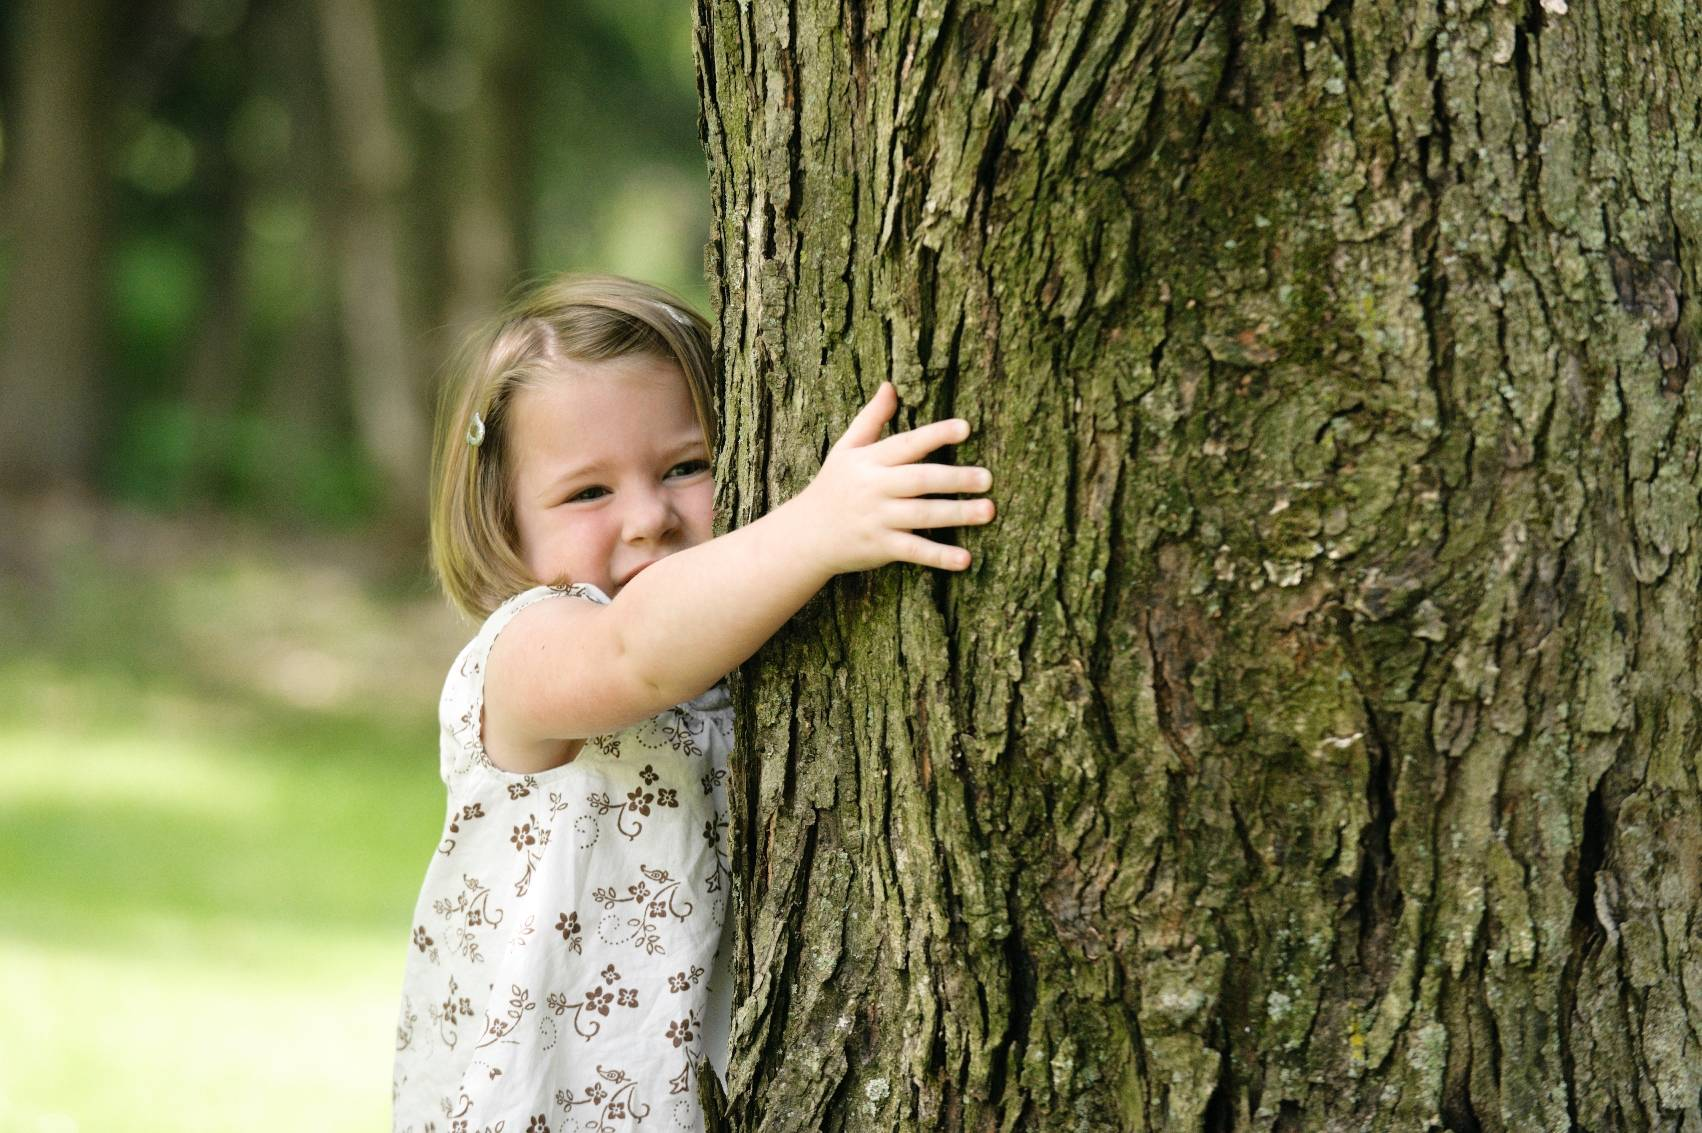 Trees save lives, improve curb value, and decrease violence. Share the love, and hug a tree.